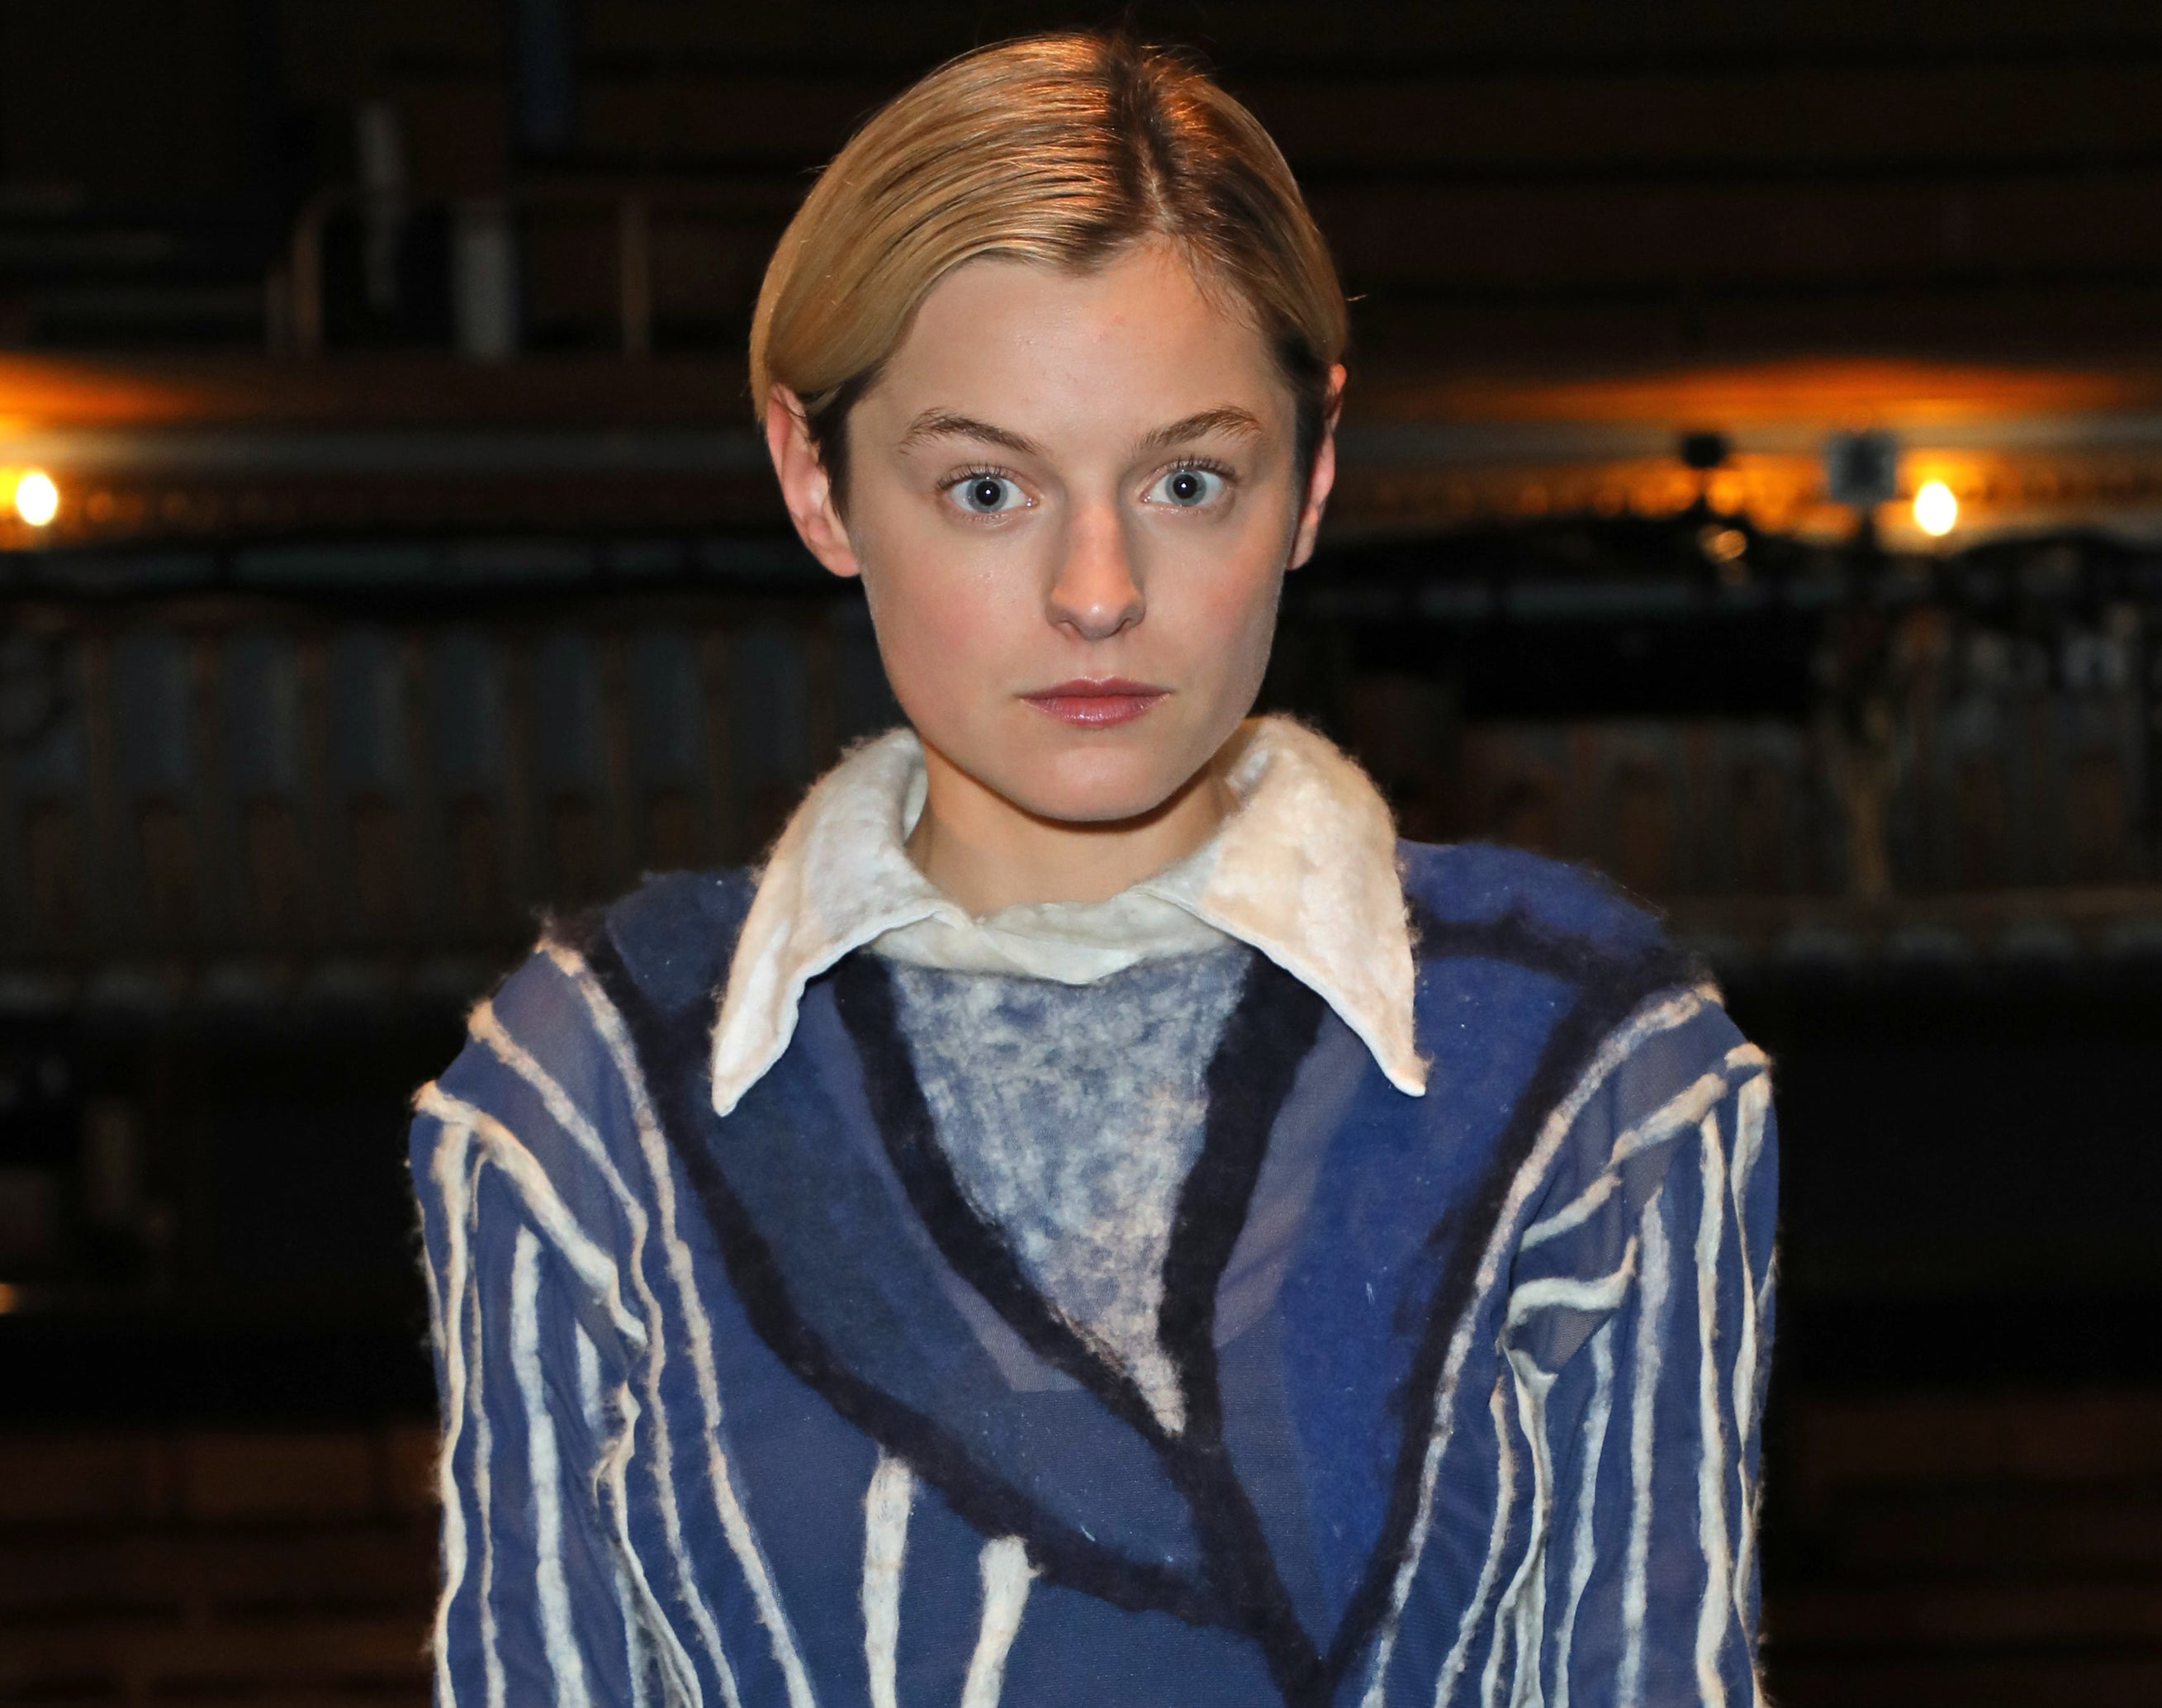 Emma wears a blue sweater with white stripes and collared shirt